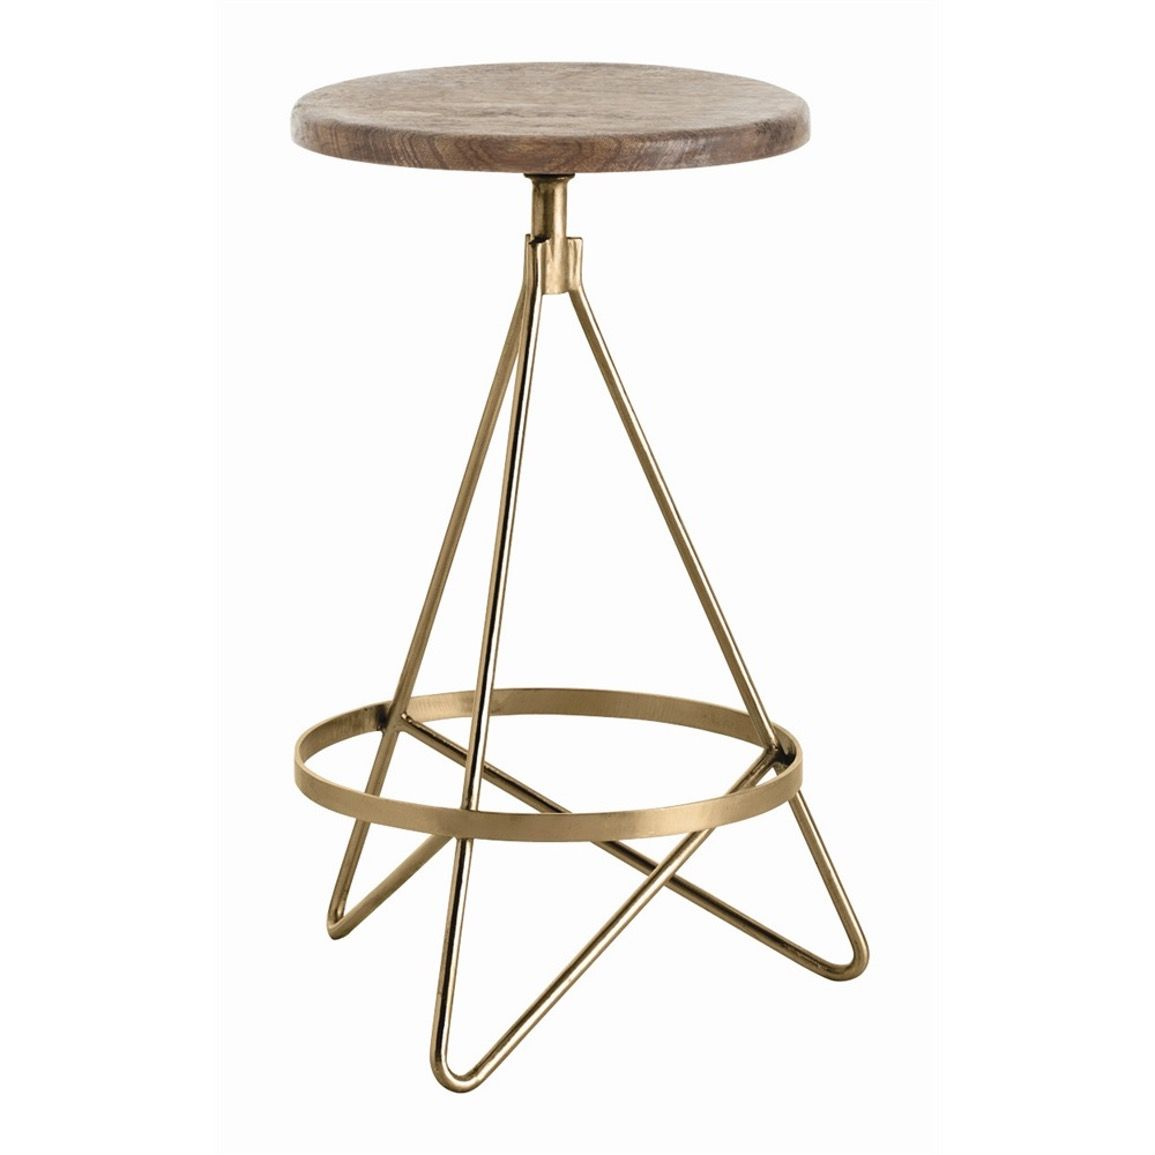 Buy Wyndham Swivel Counter Stool by Arteriors - Quick Ship designer Furniture from Dering Hall's collection of Contemporary Seating